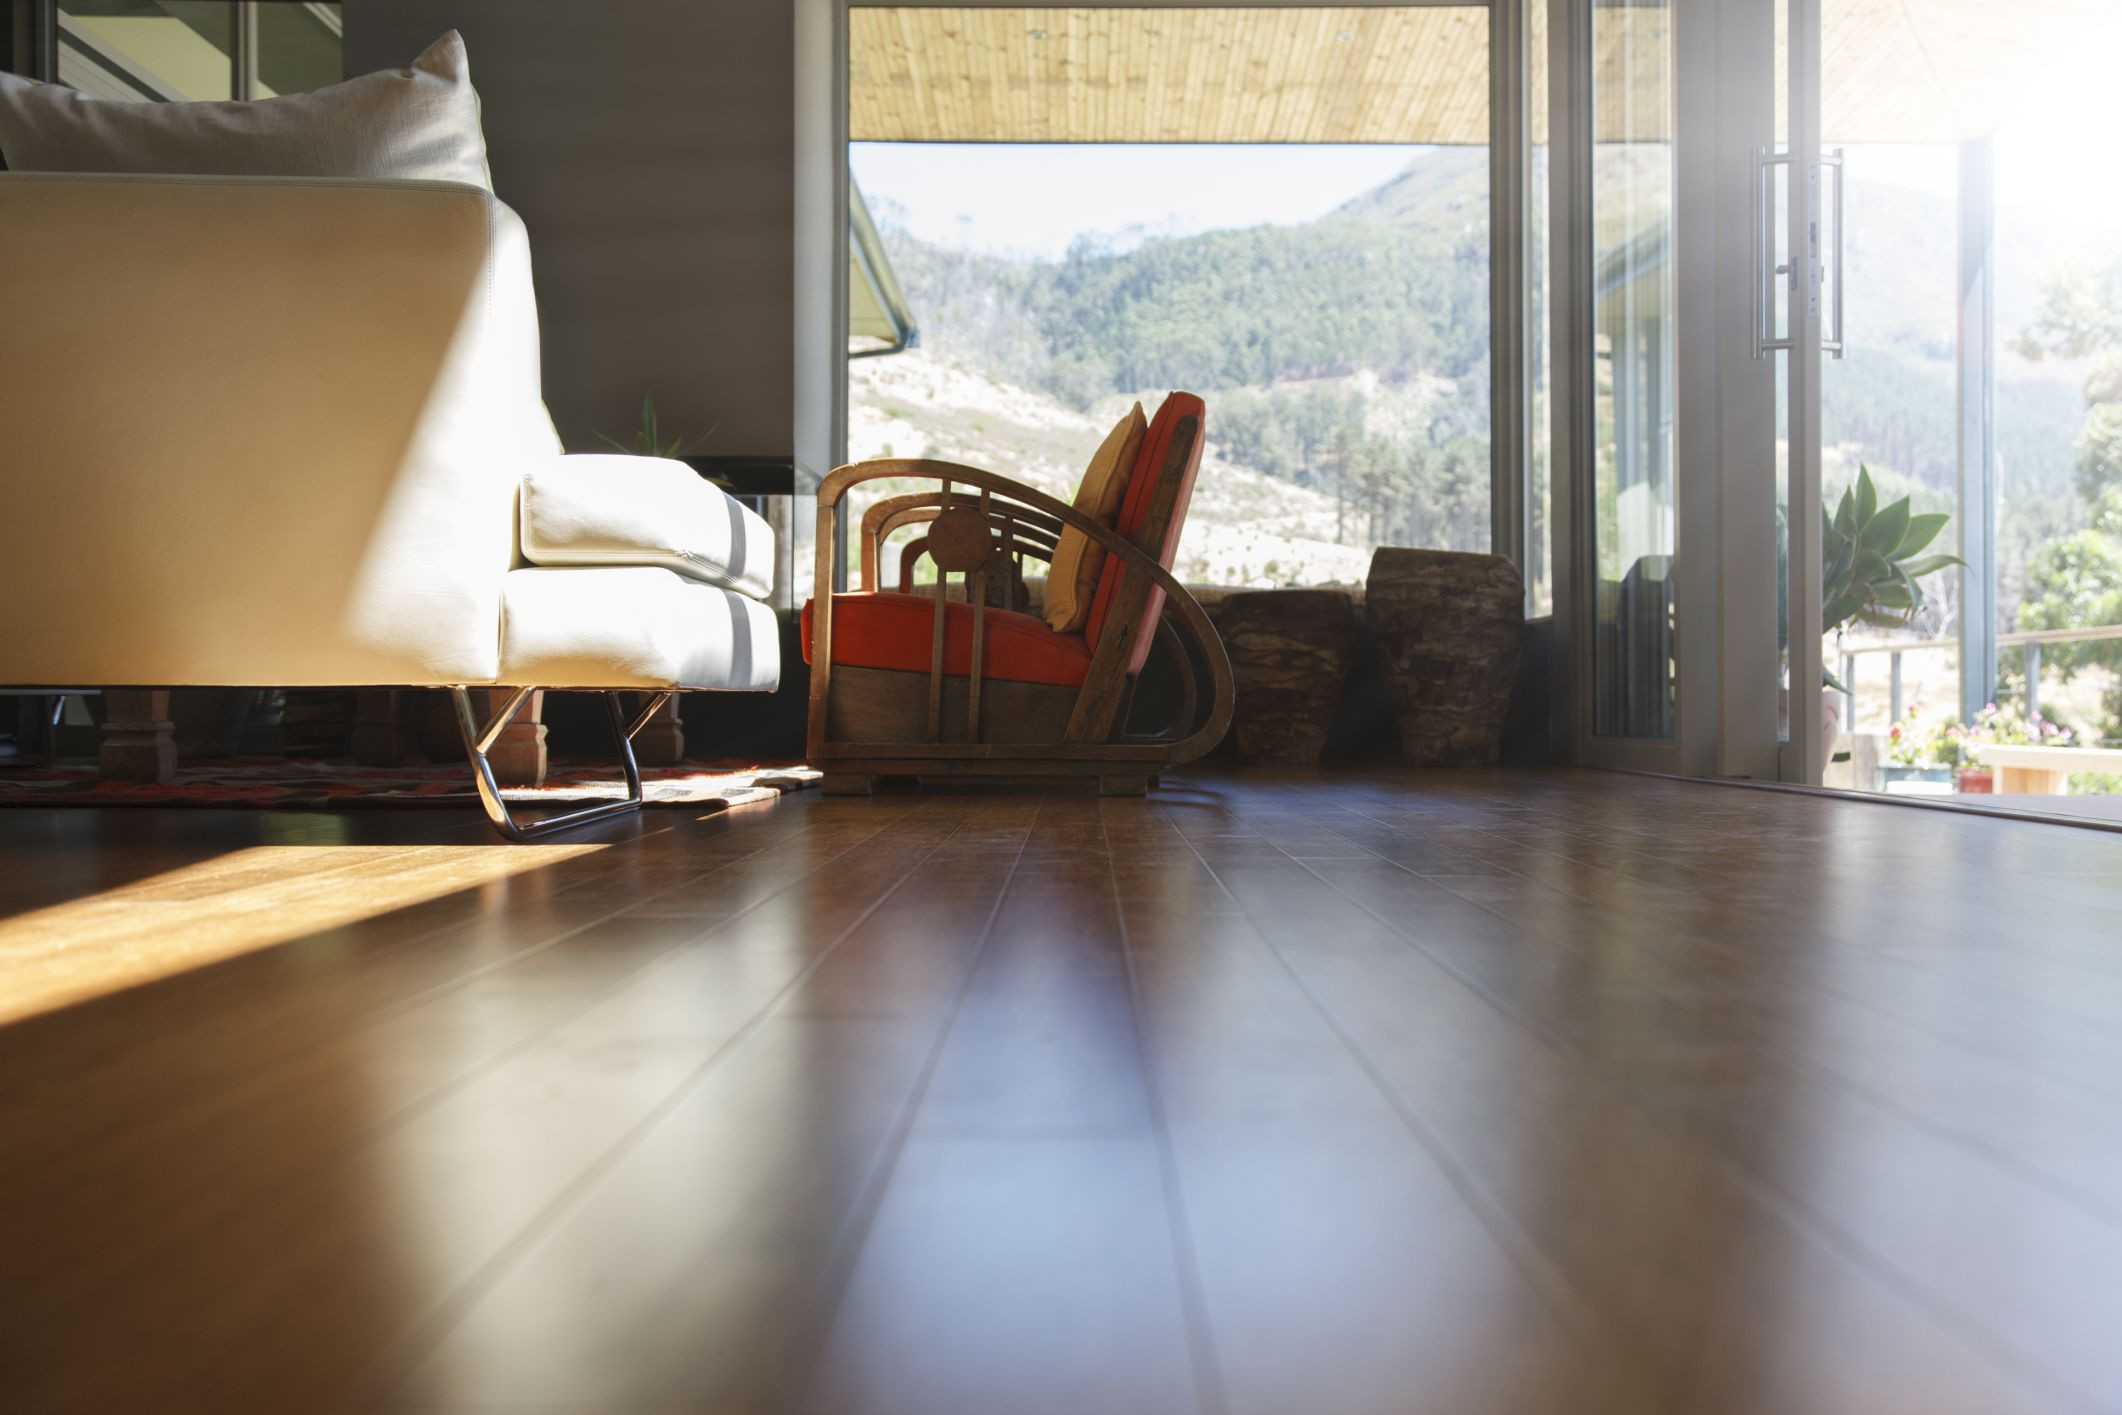 re waxing hardwood floors of floating floors basics types and pros and cons throughout exotic hardwood flooring 525439899 56a49d3a3df78cf77283453d